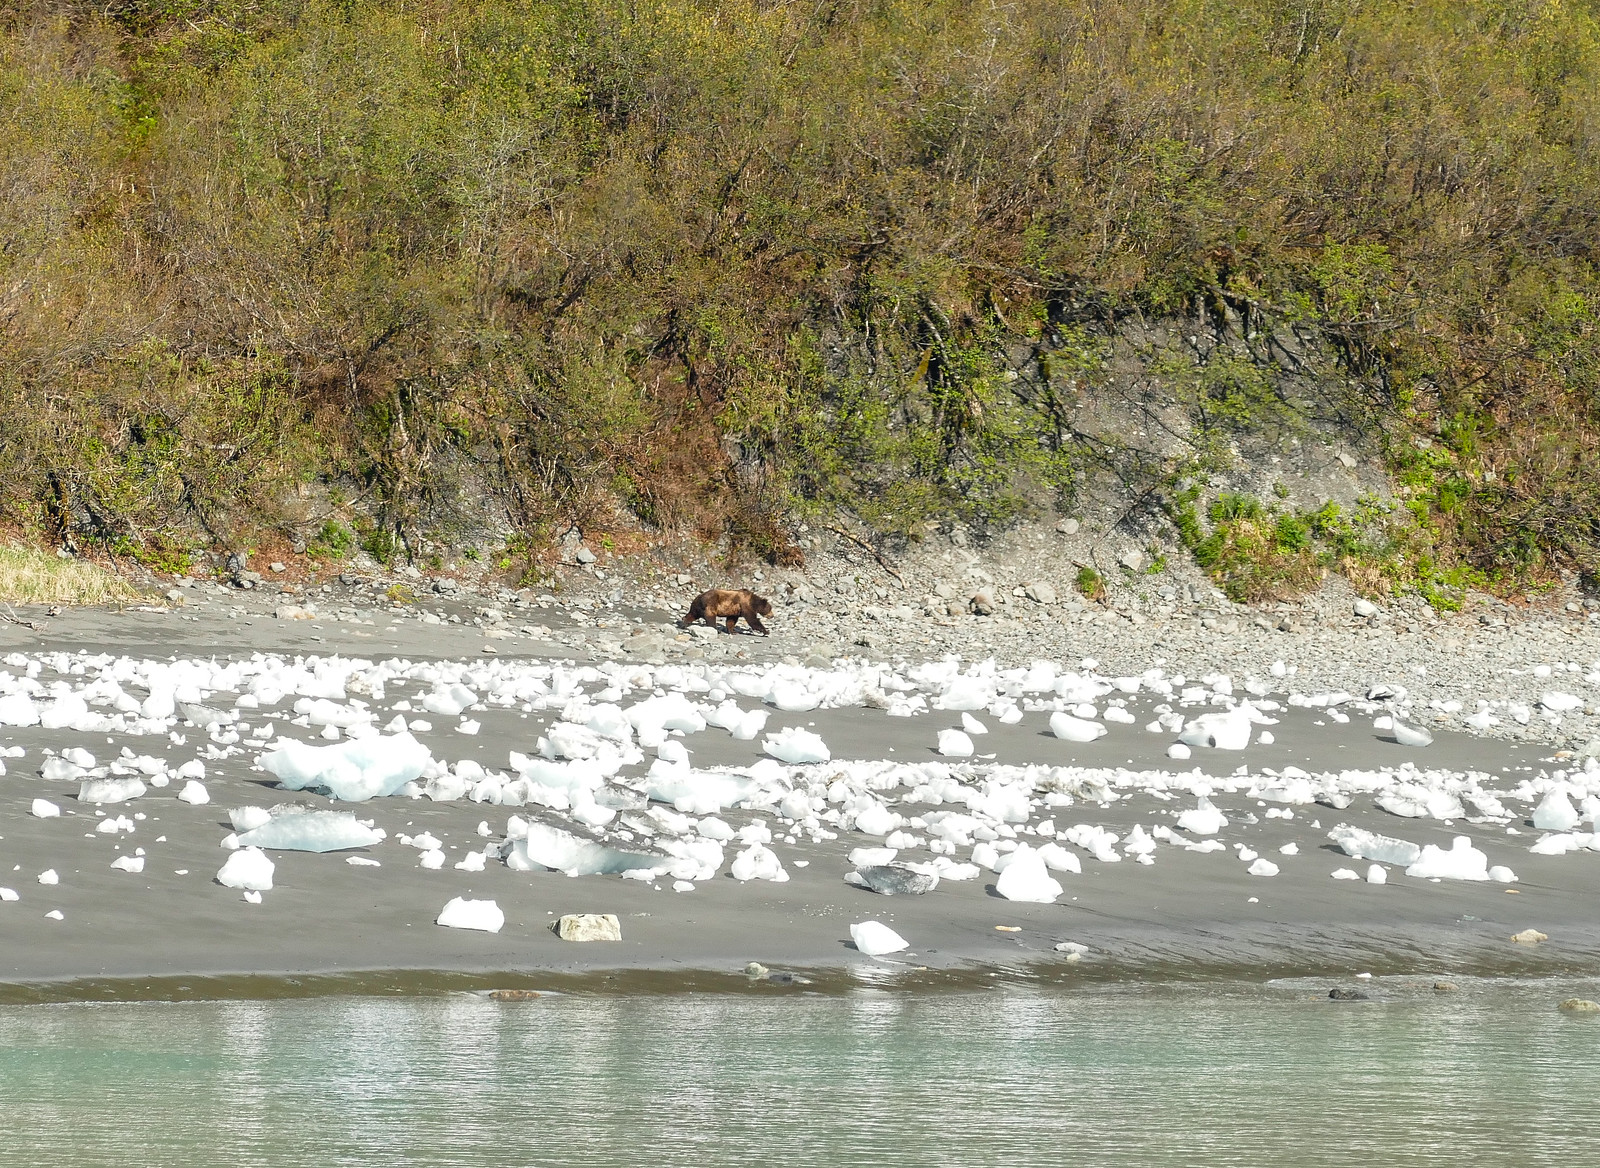 Brown bear strolls near a beach with white bits of icebergs.